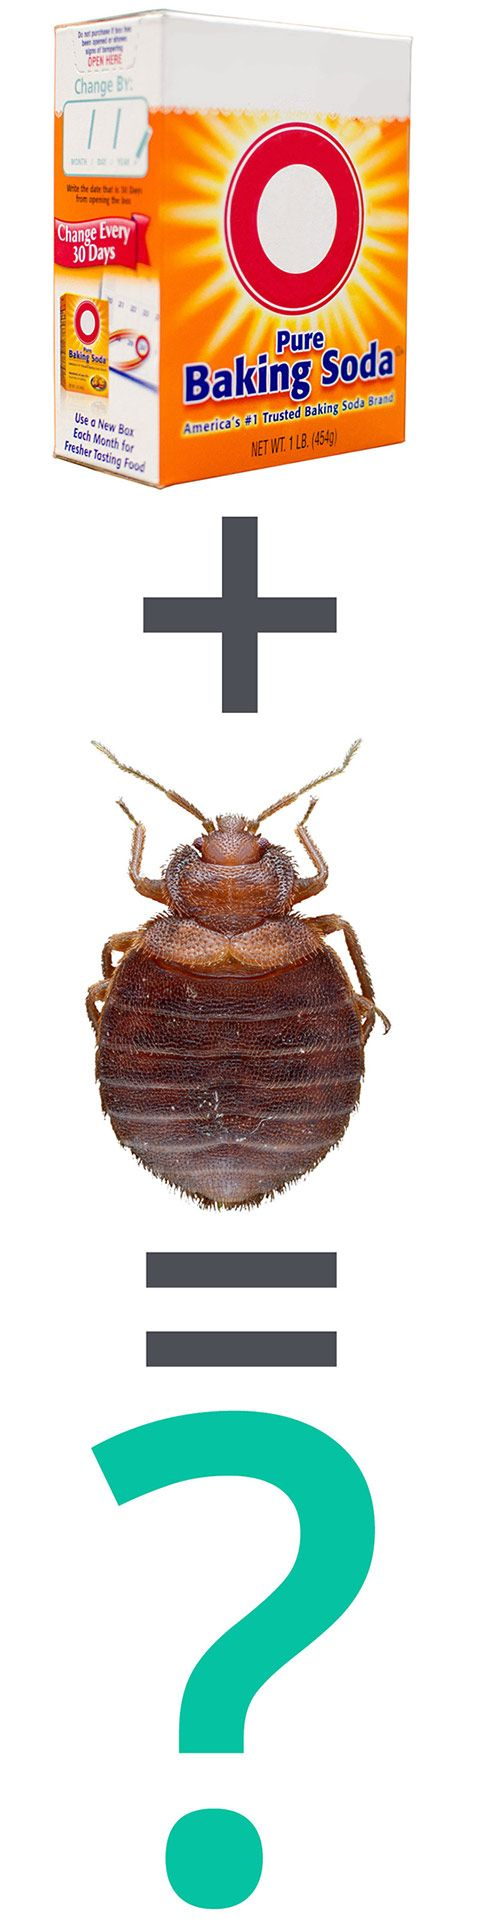 17 Best Images About Bed Bug Treatments On Pinterest